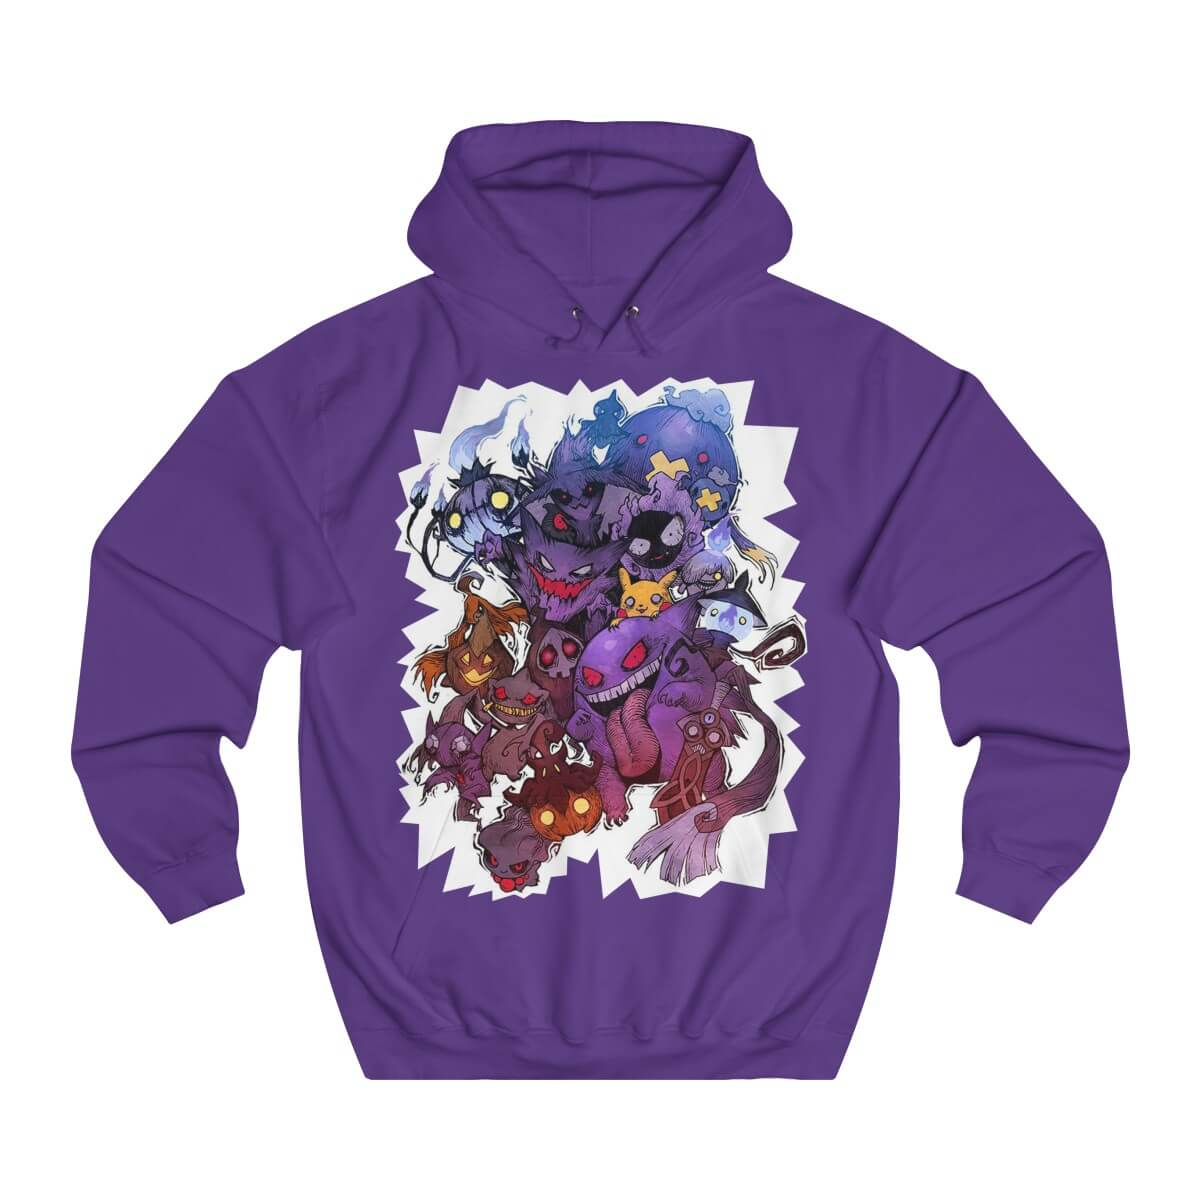 Unisex Hoodies Pokemon